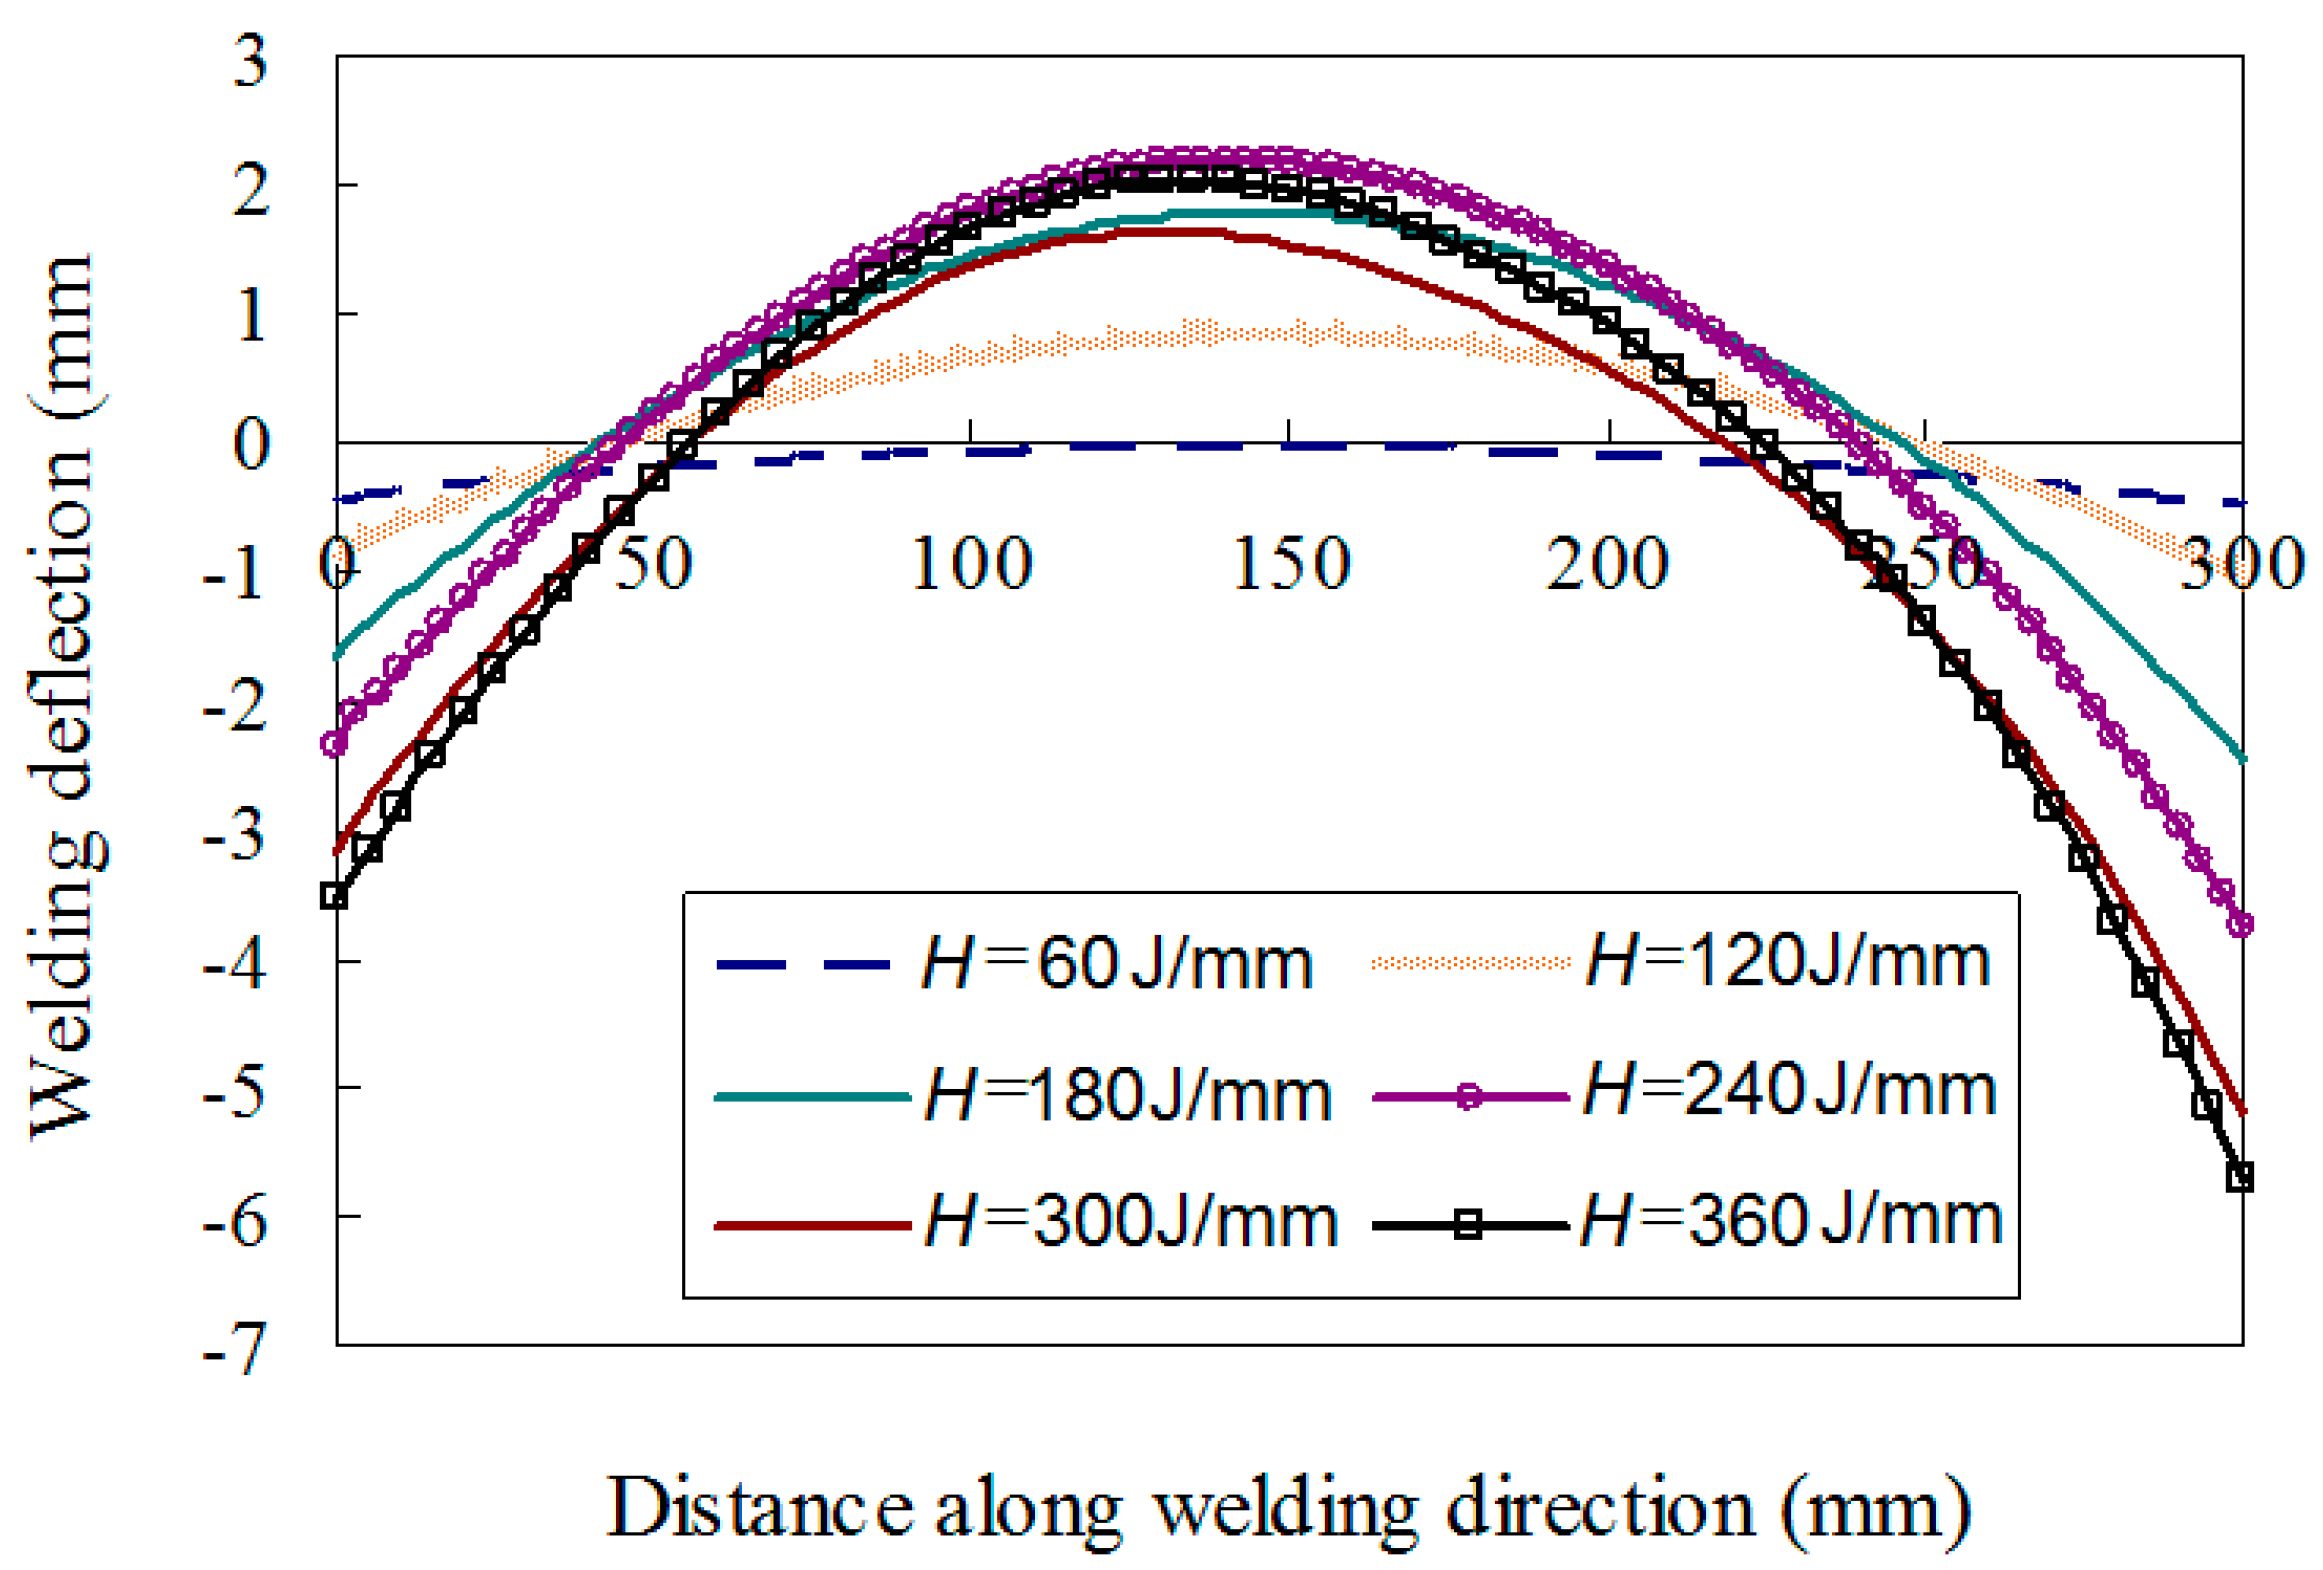 Materials Free Full Text Finite Element Analysis And In Situ Measurement Of Out Of Plane Distortion In Thin Plate Tig Welding Html